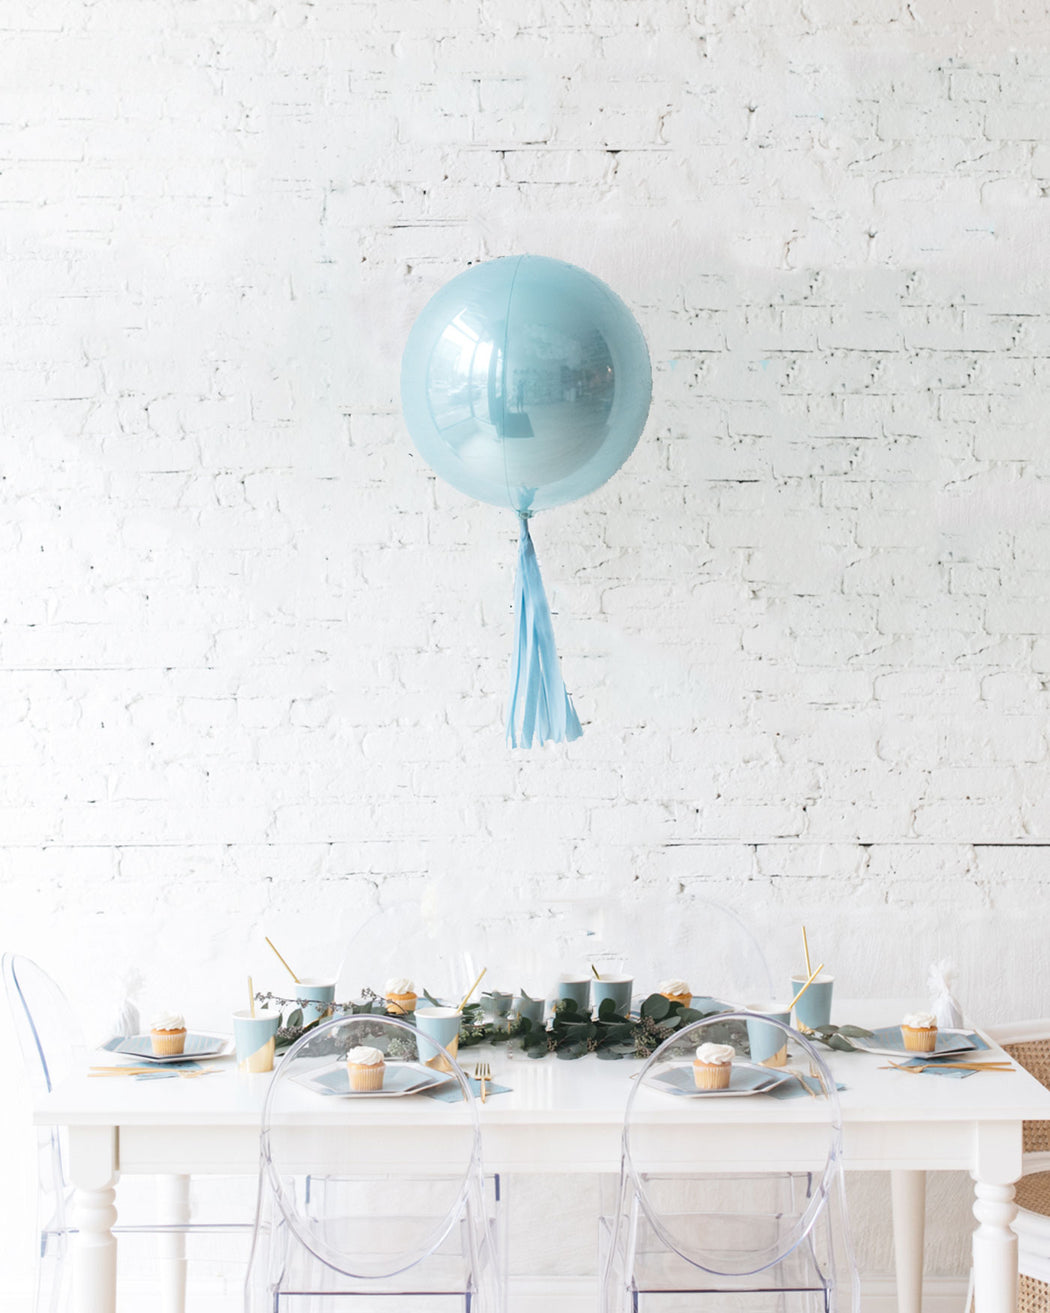 16in Pastel Blue Orb Foil Balloon and French Blue Skirt Centerpiece